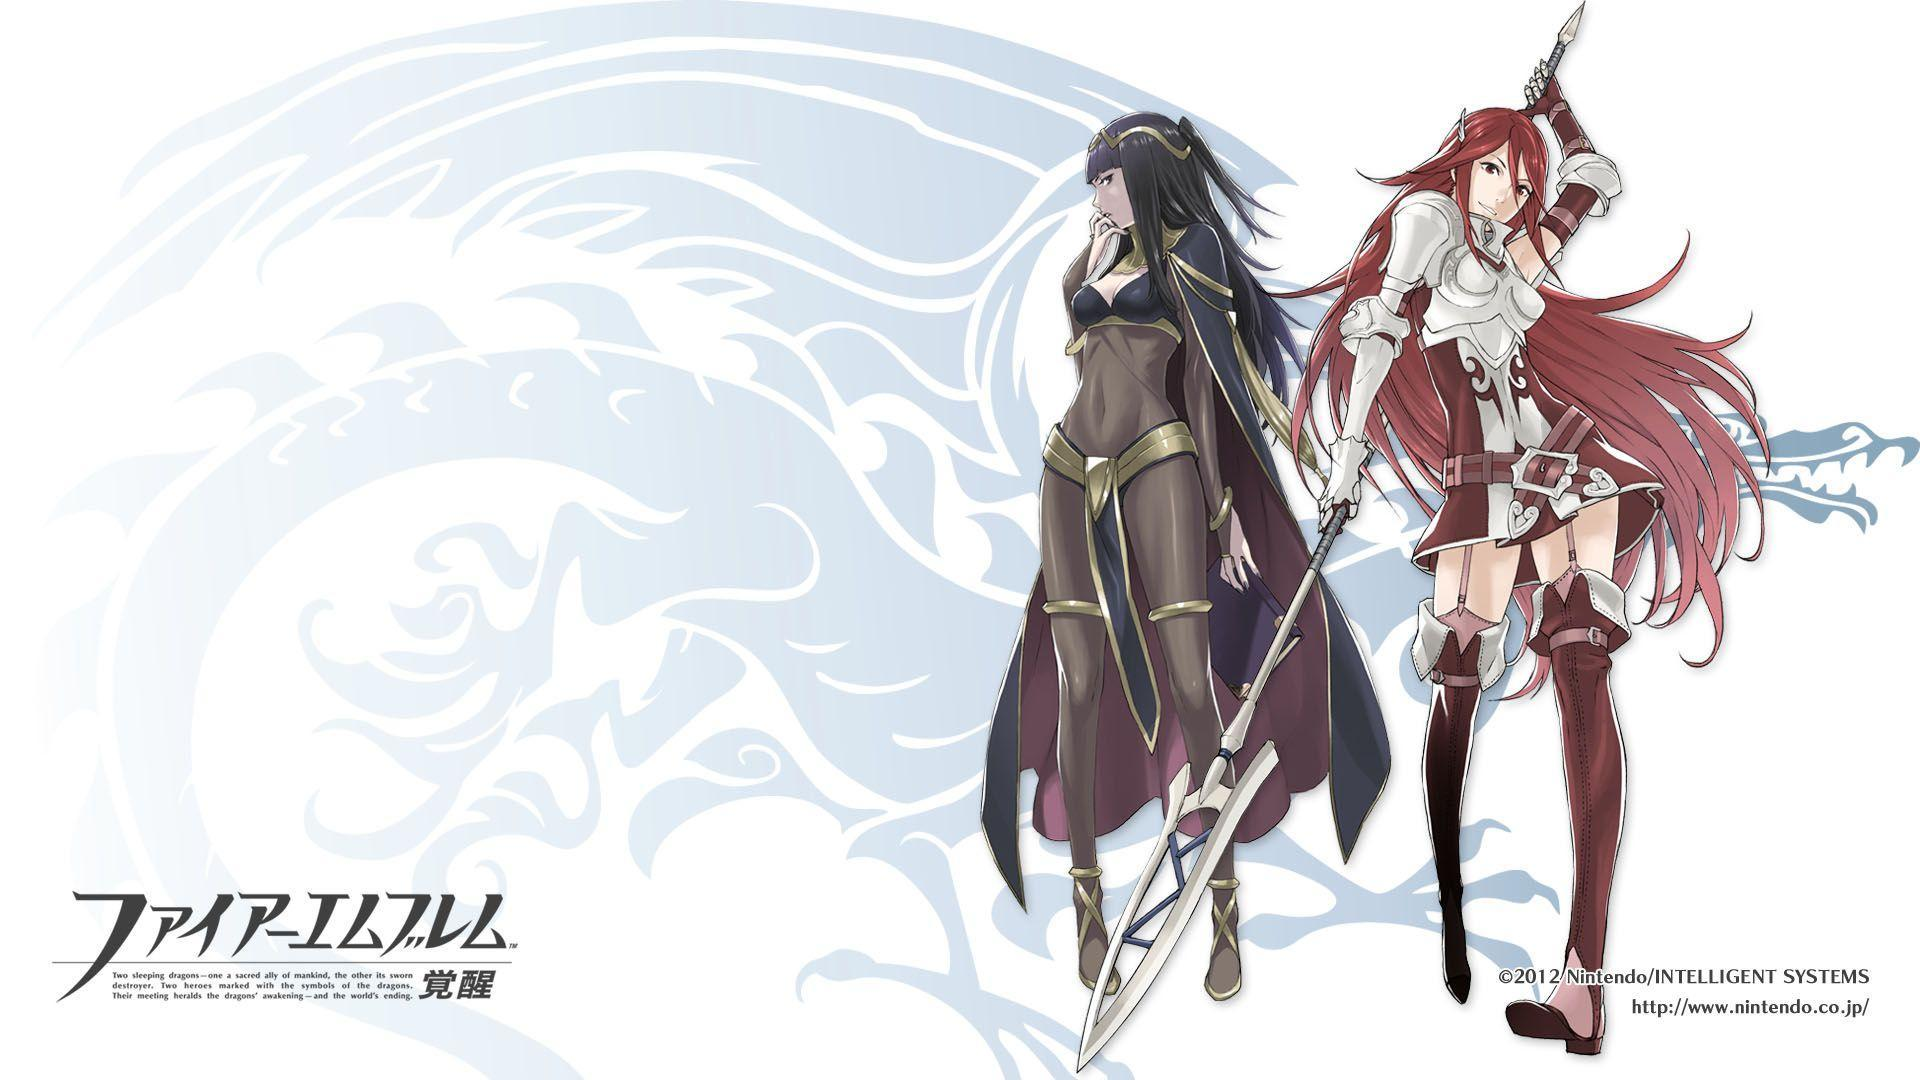 Fire Emblem Wallpapers Wallpaper Cave